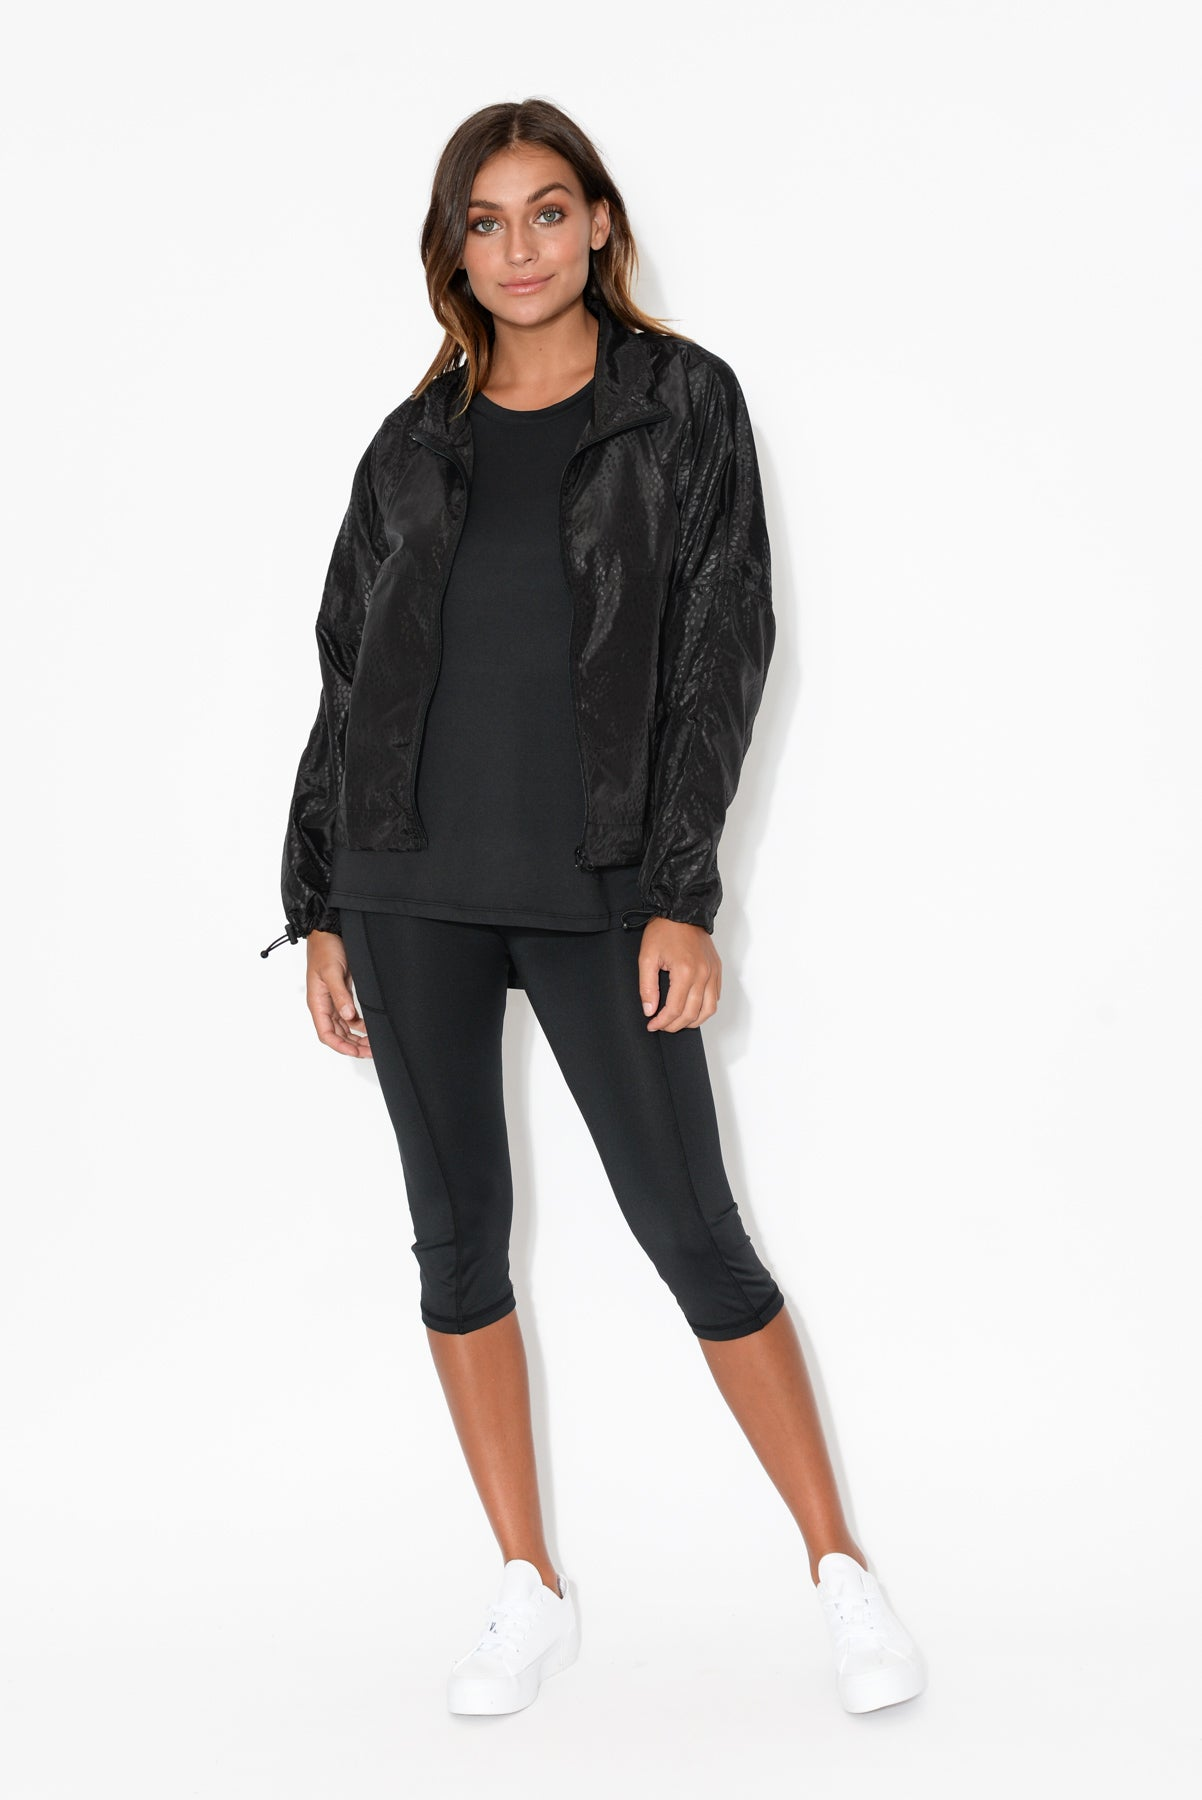 Pace Black Pocket Jacket